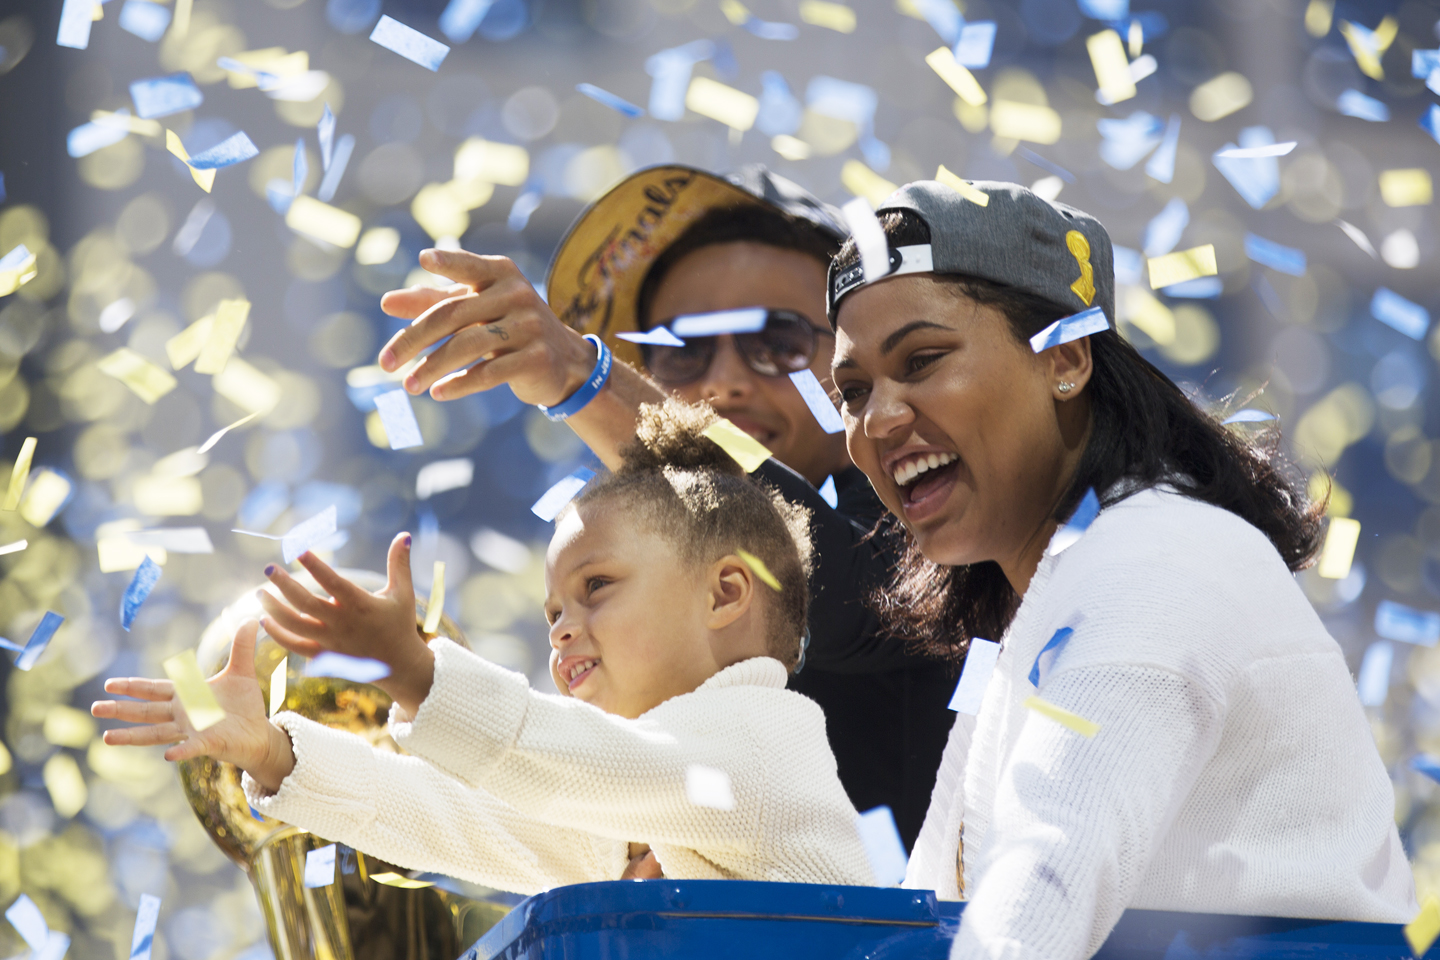 Stephen Curry, daughter Riley Curry (L) and wife Ayesha Curry (R) celebrate as confetti falls during the Golden State Warriors Victory Parade in Oakland, California. Thousands are expected to attend in celebration of the Warriors' first NBA title in 40 years.